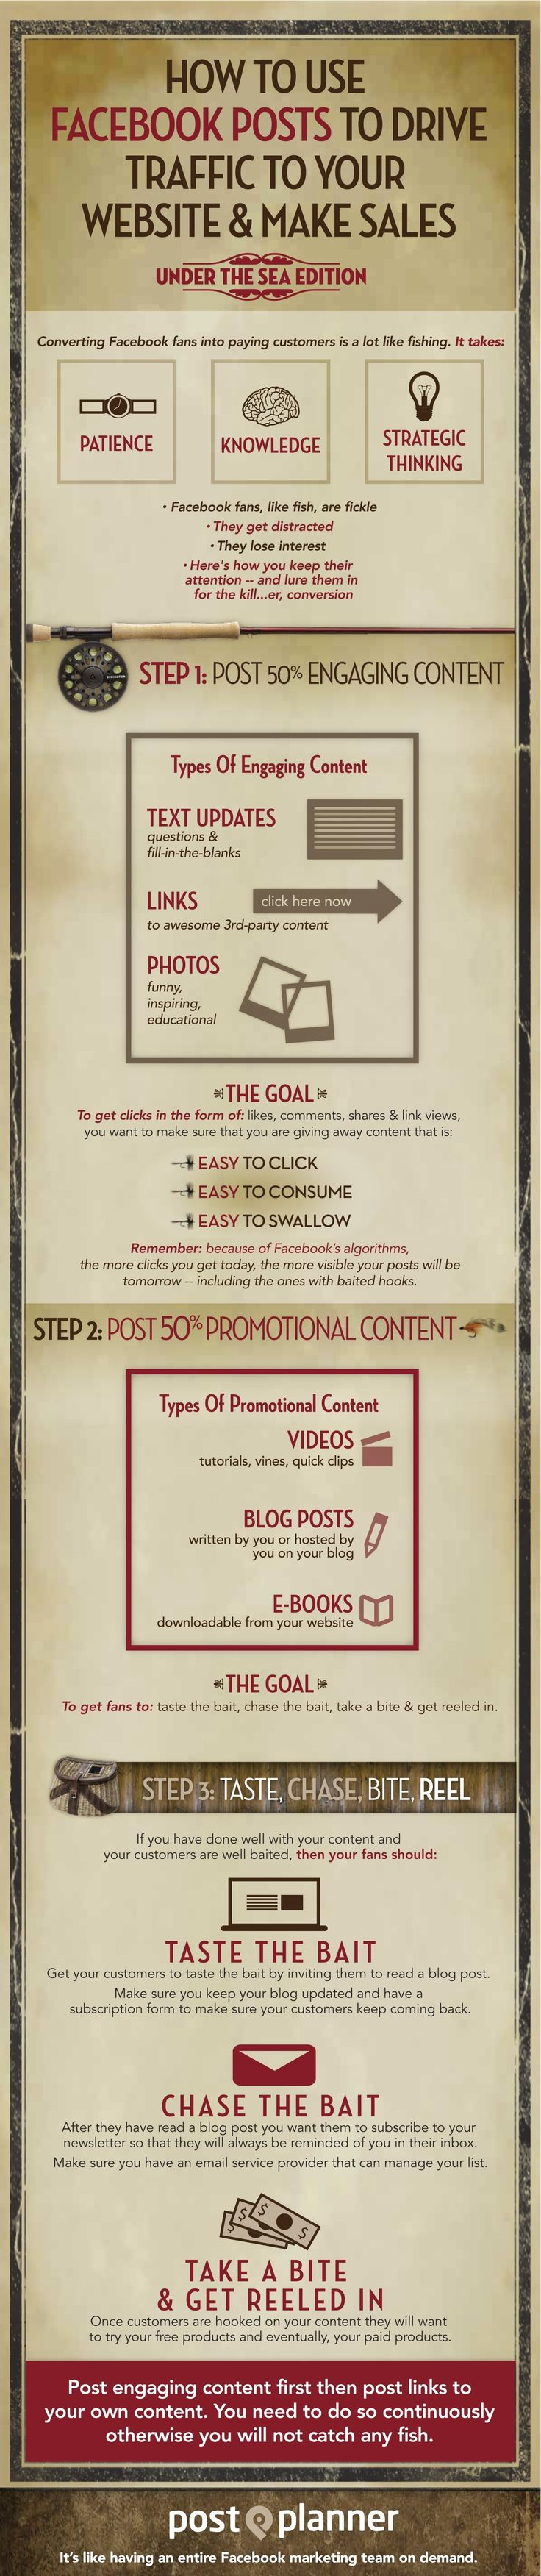 How to Use Facebook Posts to Drive Traffic to Your Website & Make Sales #facebook #infographic